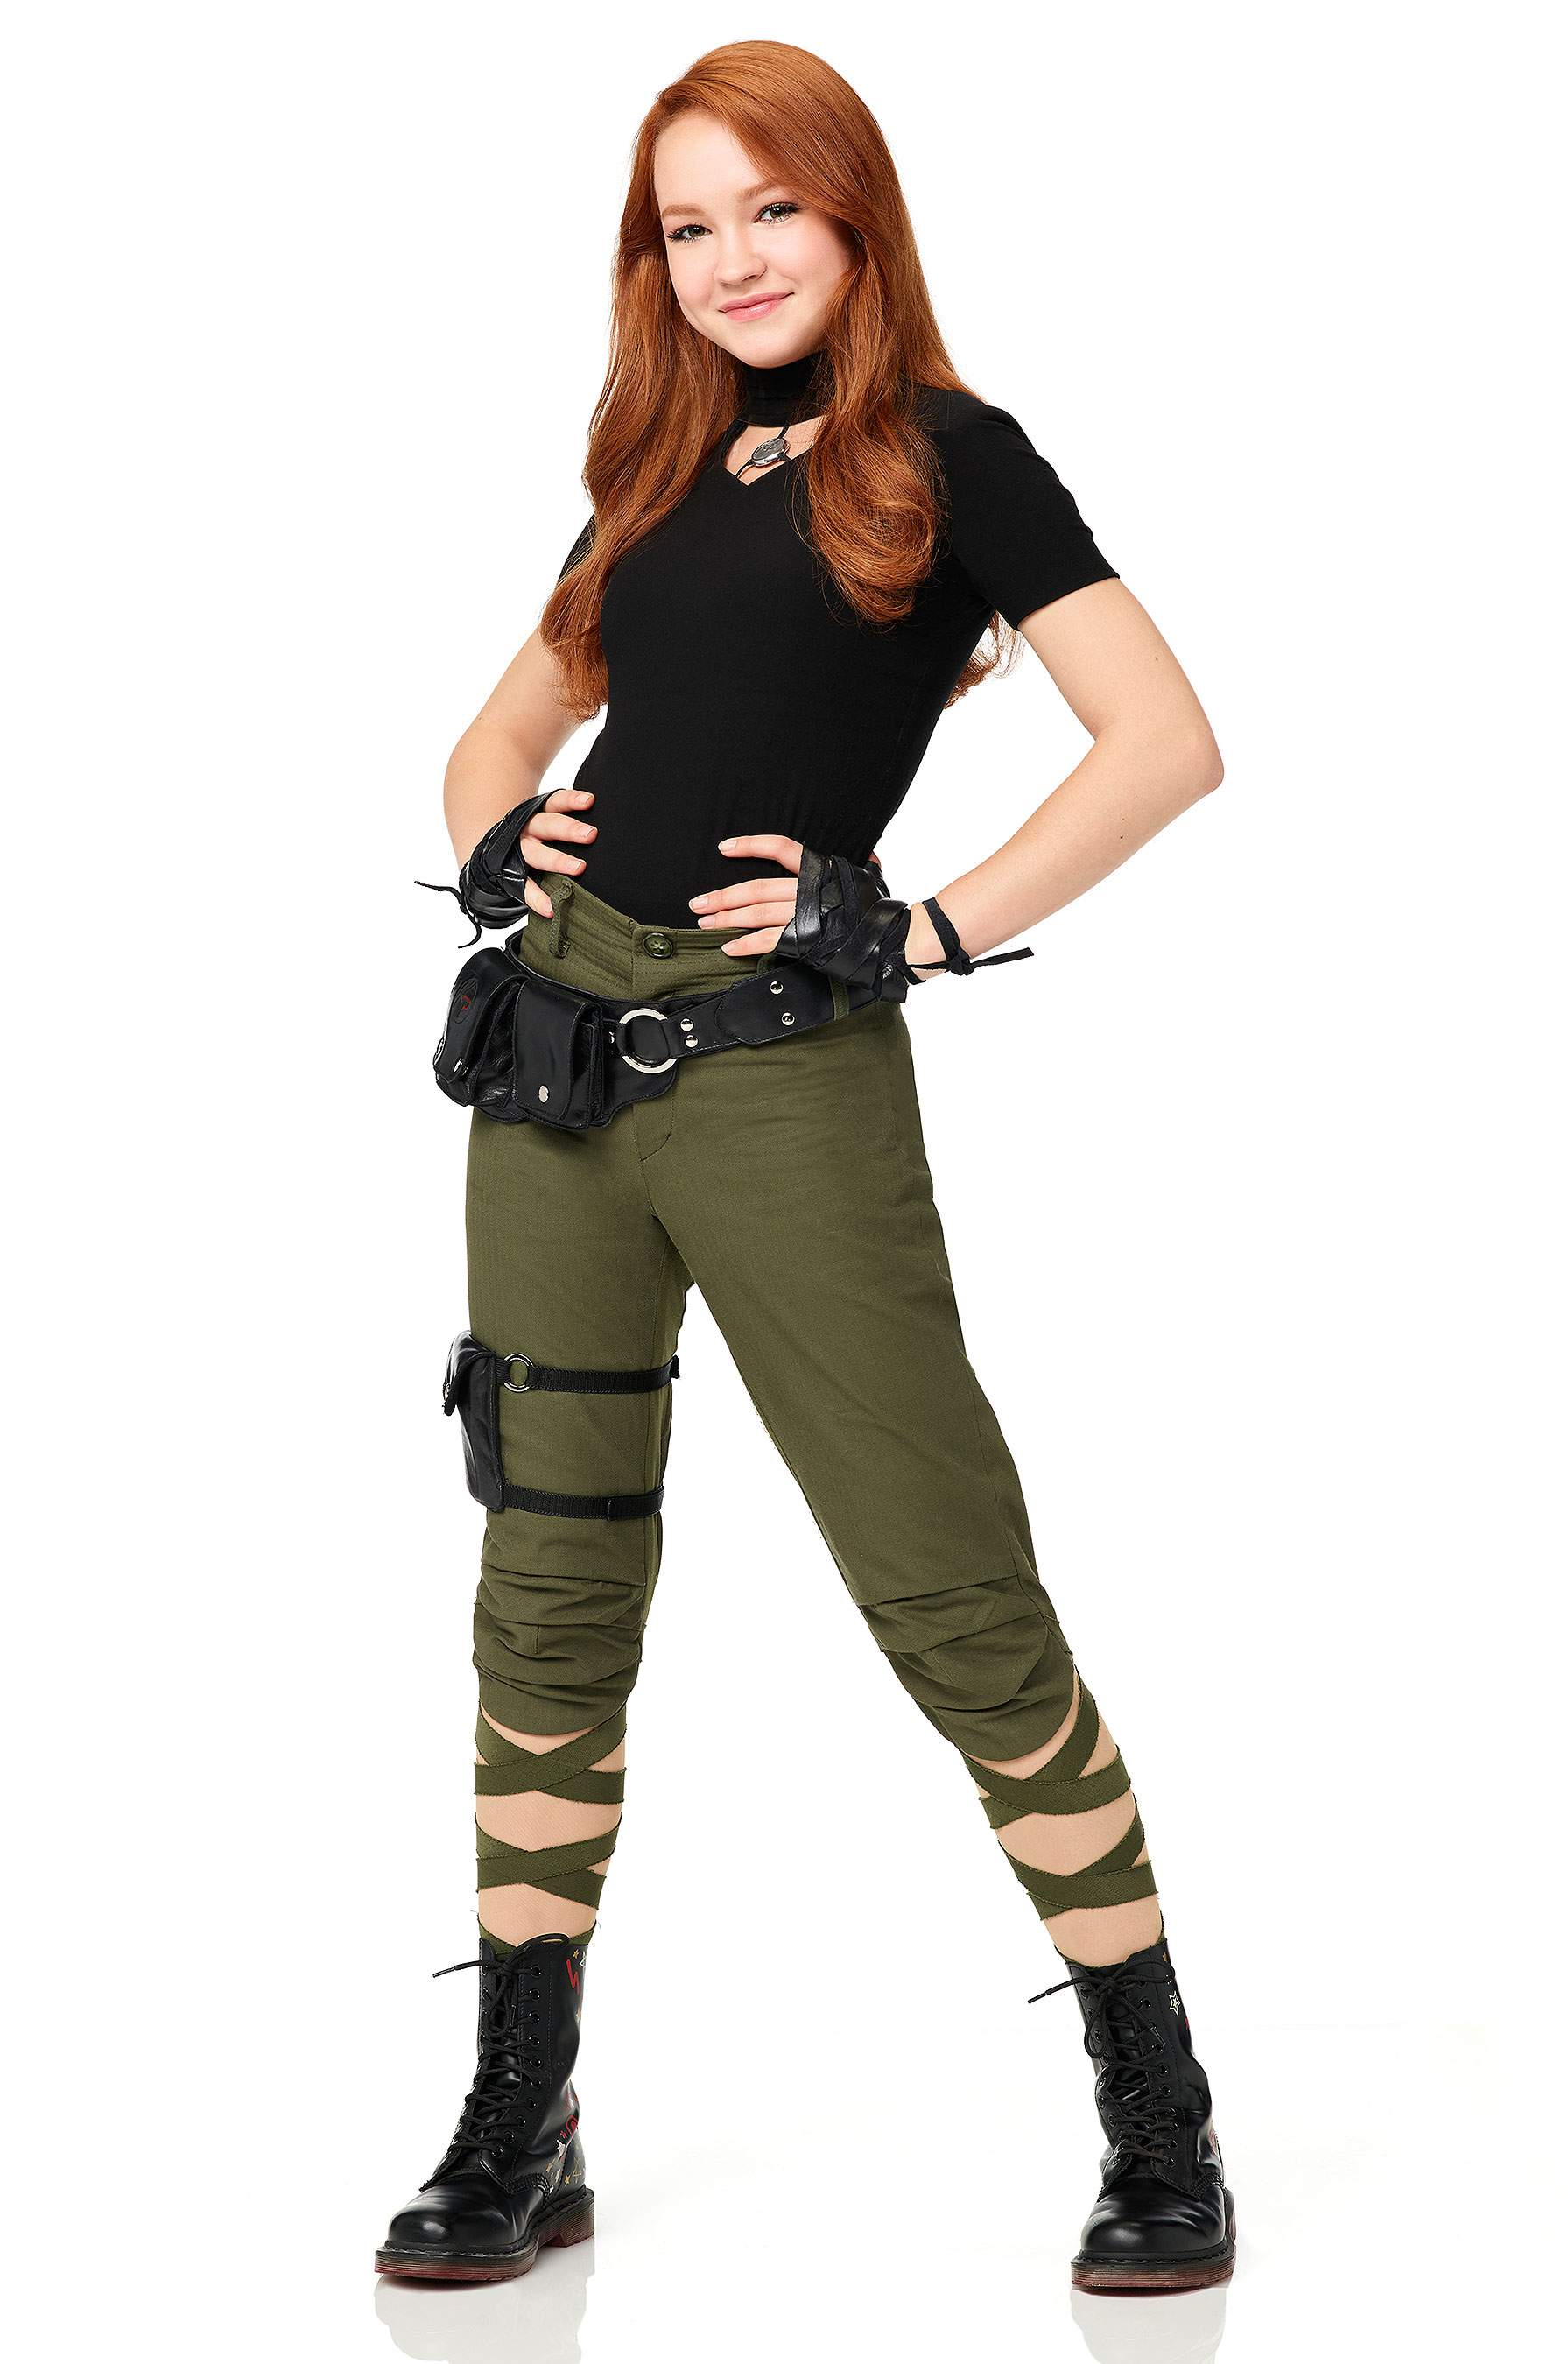 Revelado a primeira foto oficial do filme live-action de Kim Possible!